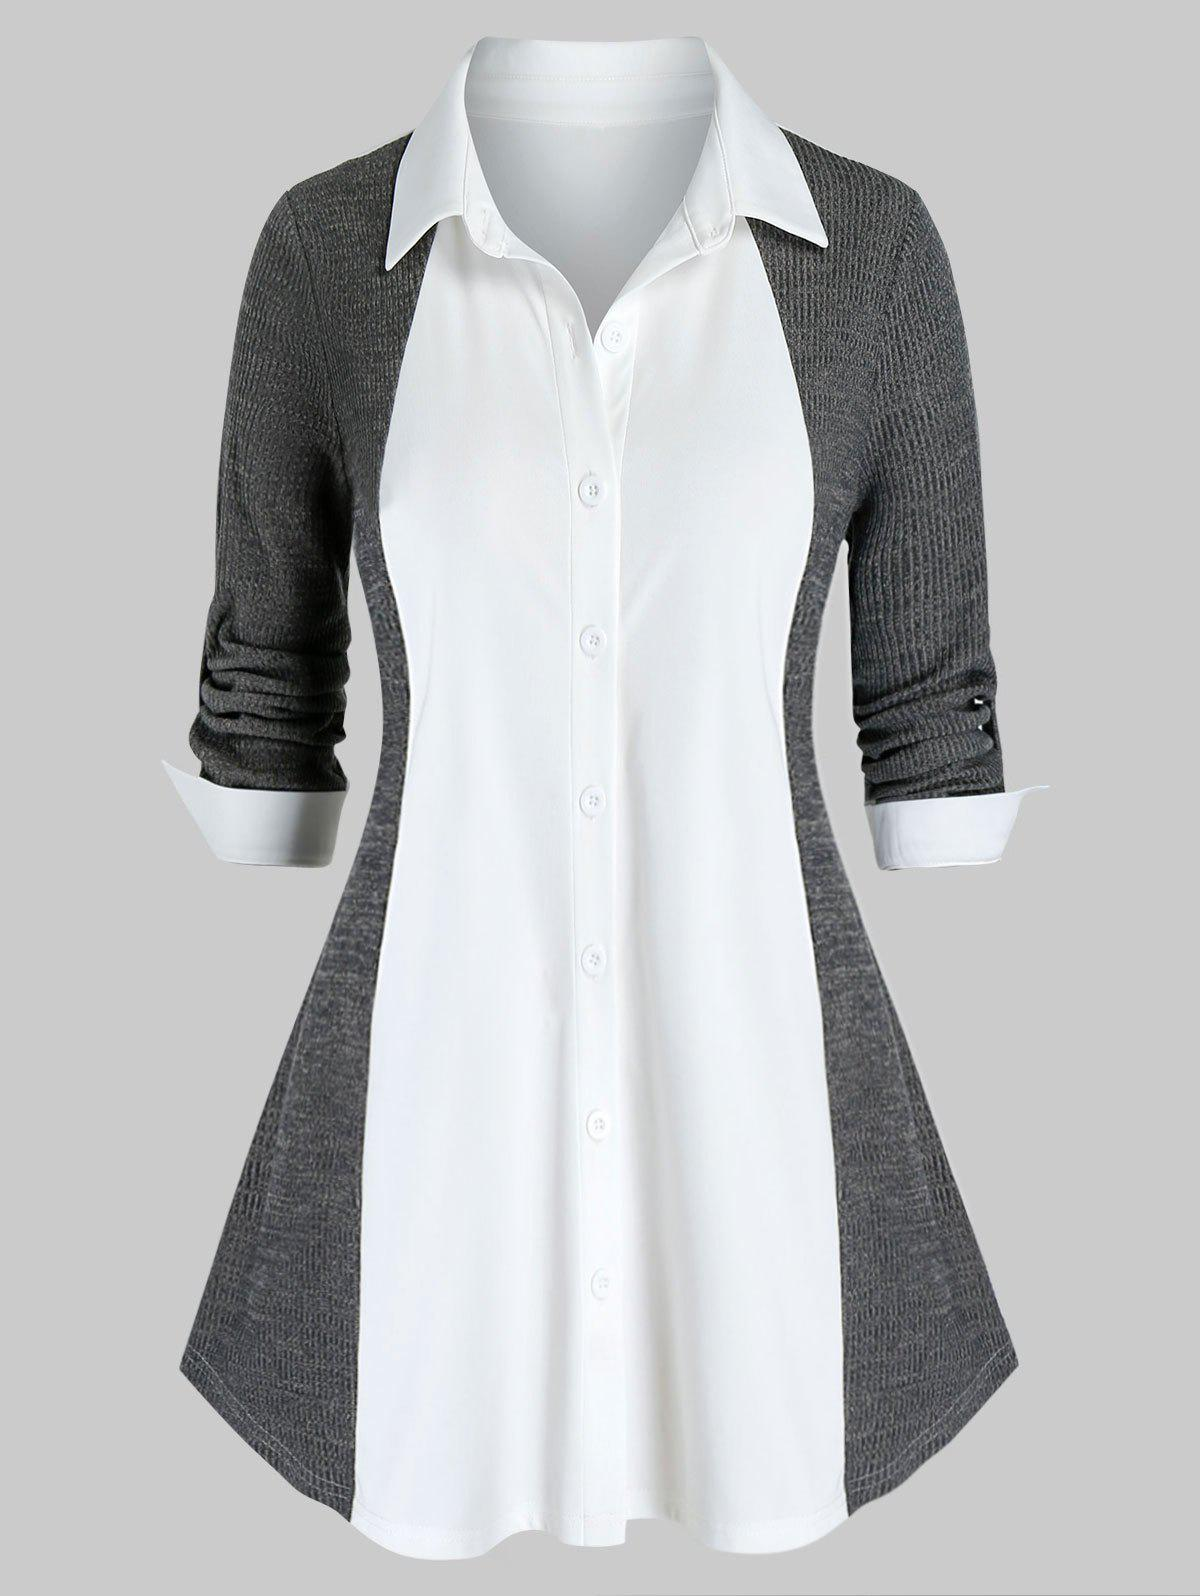 Plus Size Two Tone Knit Roll Up Sleeve Tunic Blouse - CARBON GRAY 3X